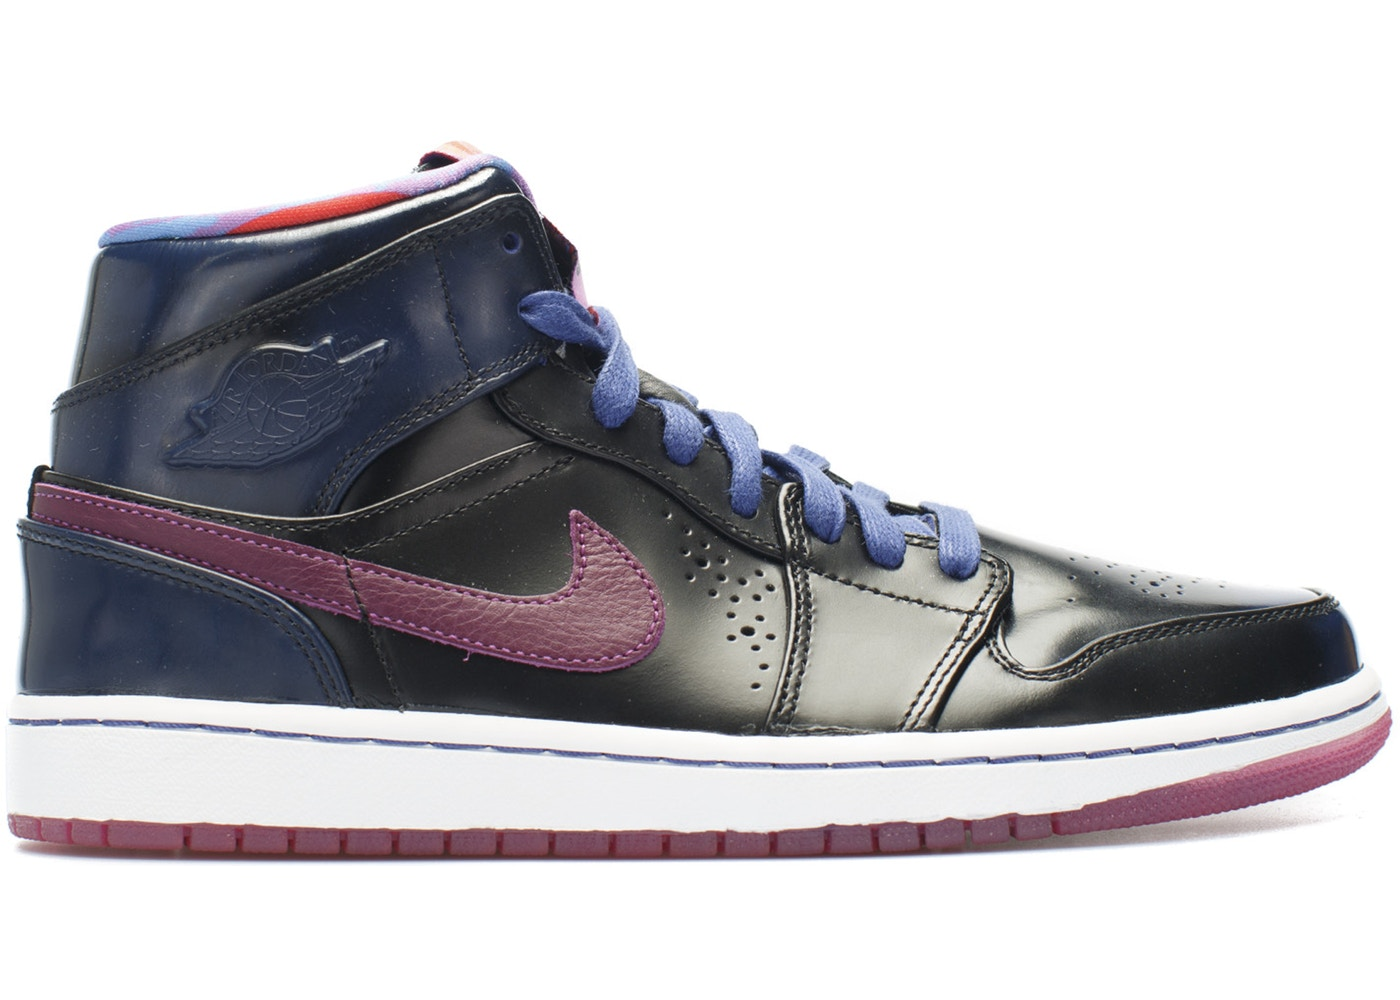 ナイキ ジョーダン JORDAN ミッド スニーカー 【 1 MID NOUVEAU YEAR OF THE HORSE DEEP ROYAL BLUE RED VOLTBLACKWHITE 】 メンズ